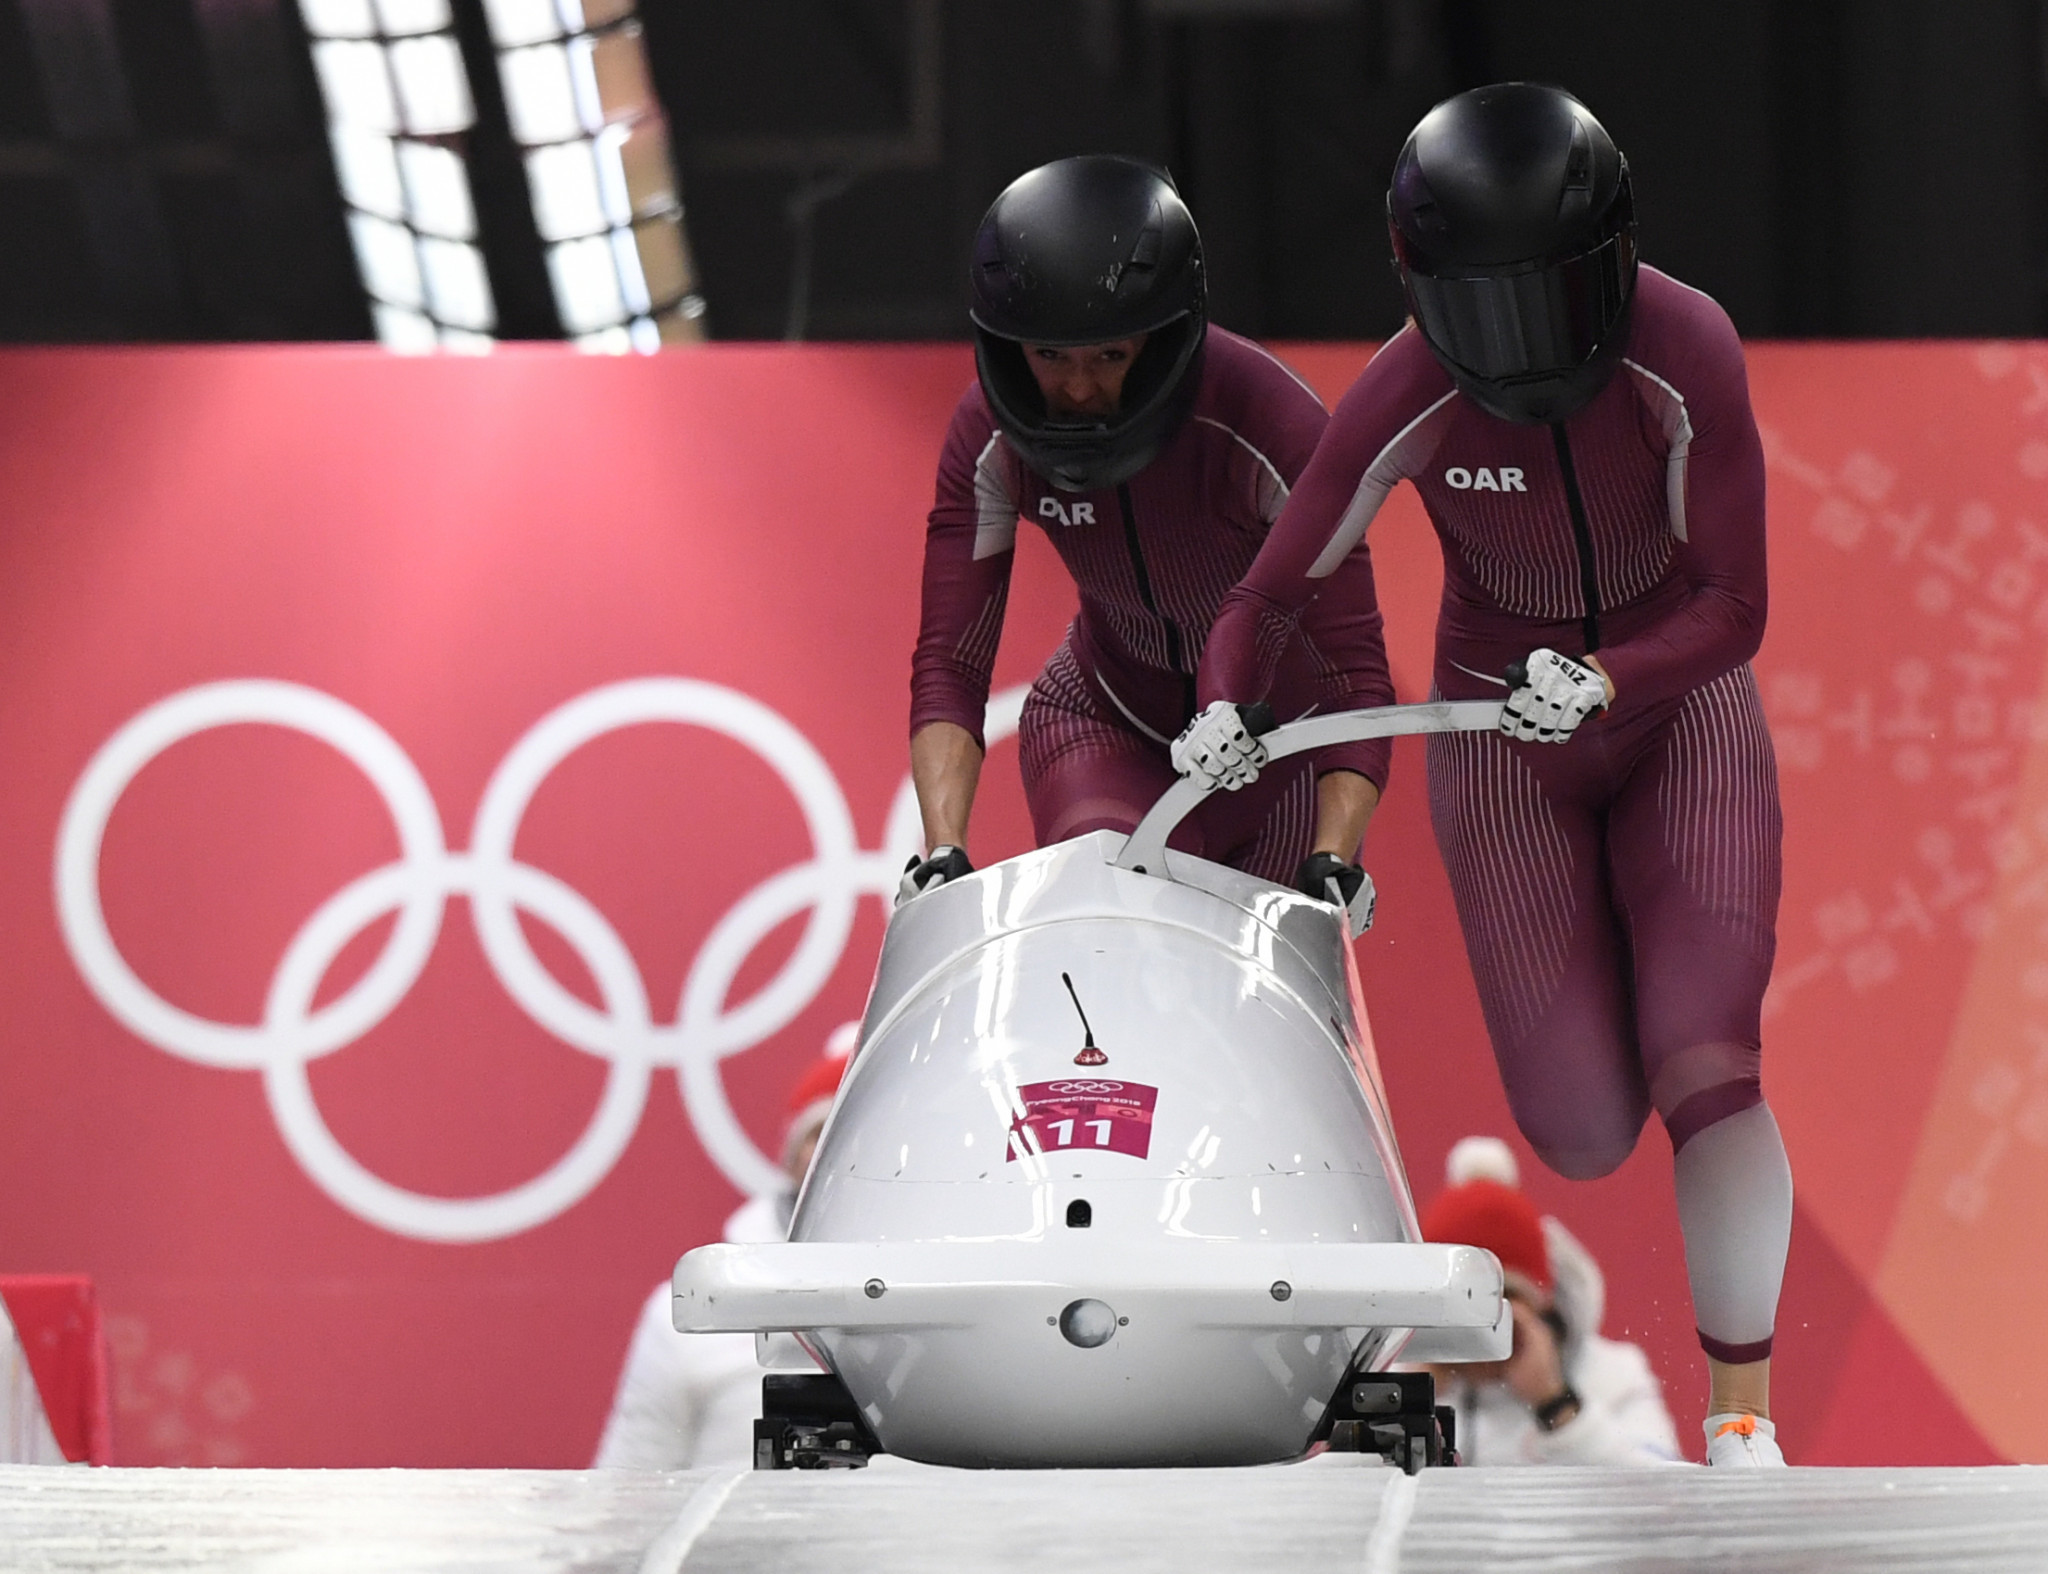 Olympic Athletes from Russia's Nadezhda Sergeeva, right, and her partner Anastasia Kocherzhova, left, finished 12th in the two-woman bob at Pyeongchang 2018 but it has now emerged that the former has tested positive ©Getty Images